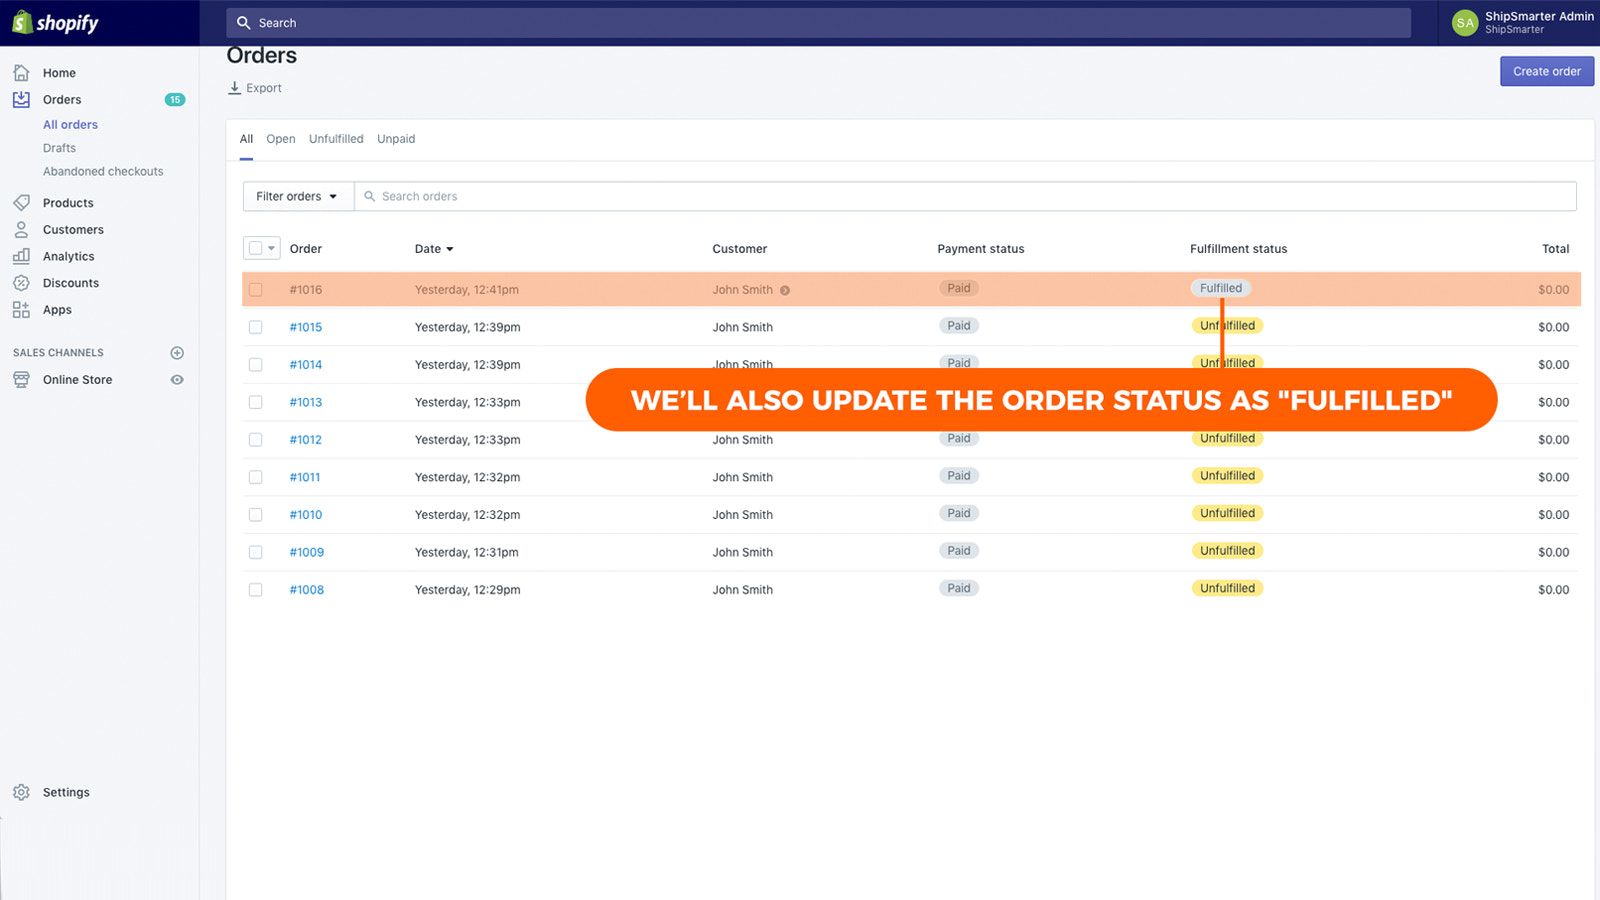 Tracking info will sync with your store & fulfill your orders